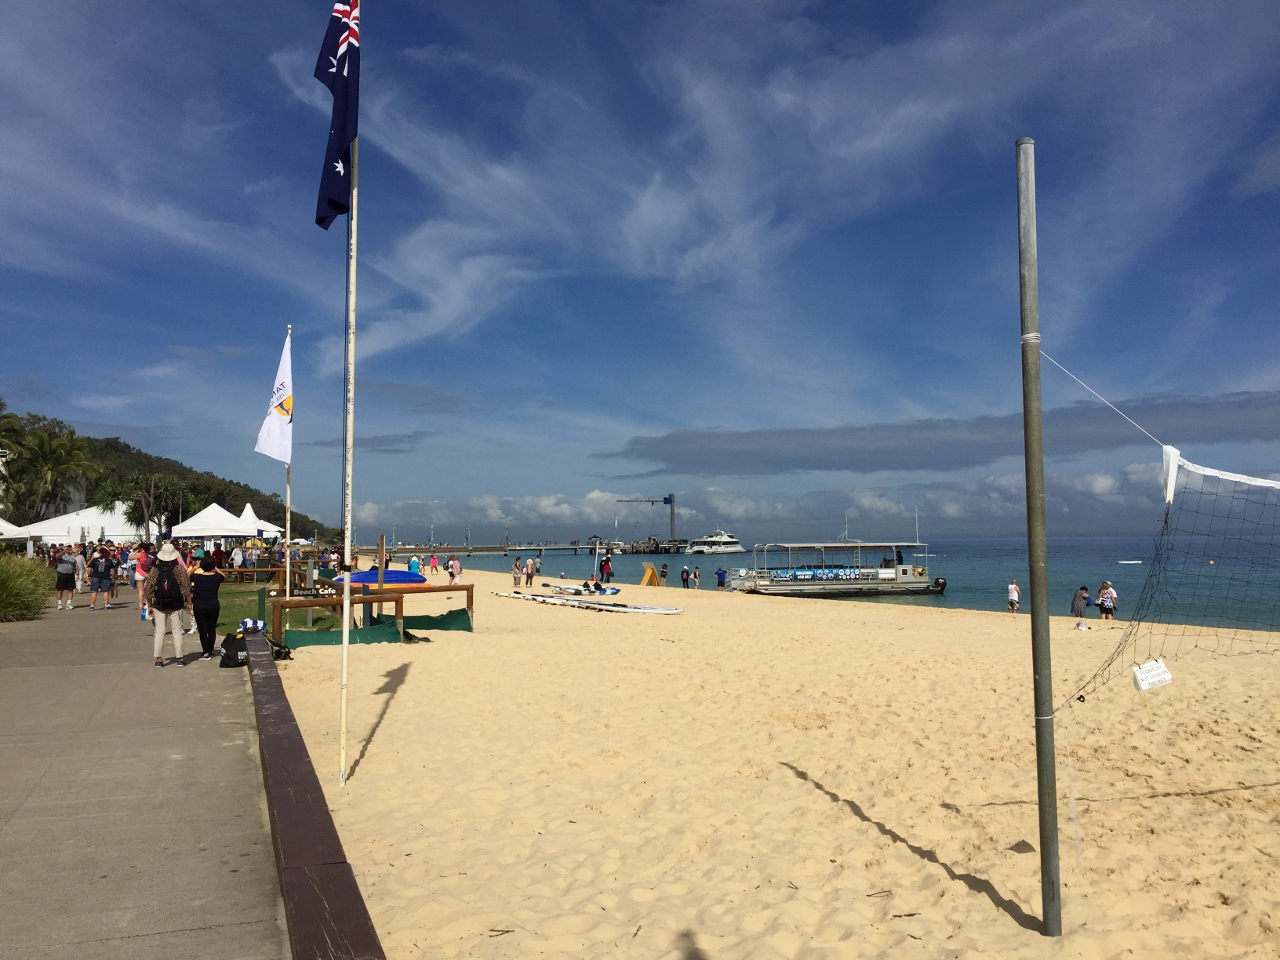 Moreton Island offers plenty of entertainment to keep you busy during your cruise shore day.